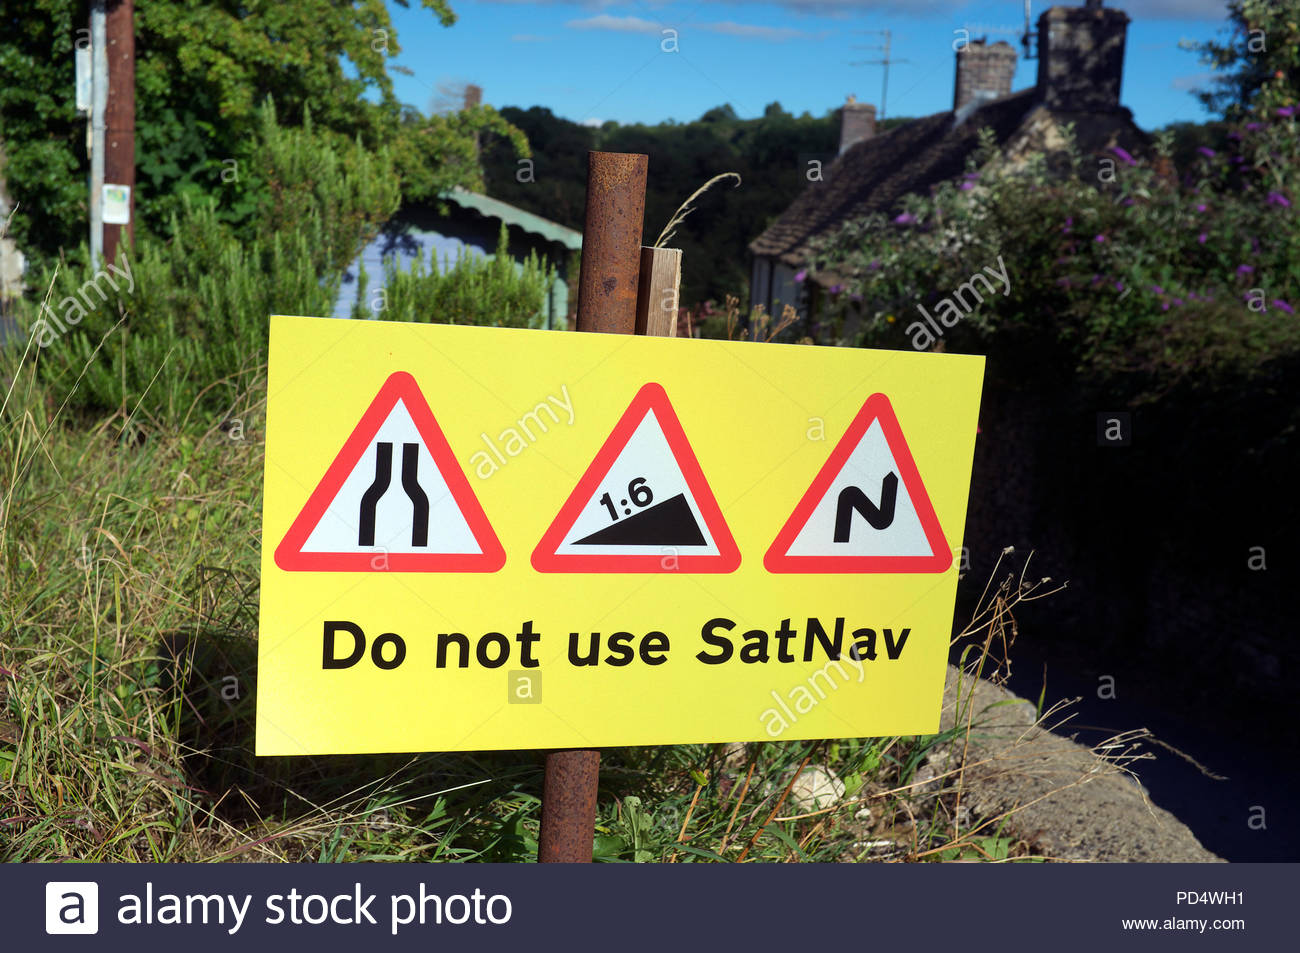 Do not use Satnav - road restrictions sign in rural Horsley village, with steep narrow bendy lane ahead. Gloucestershire, UK. - Stock Image